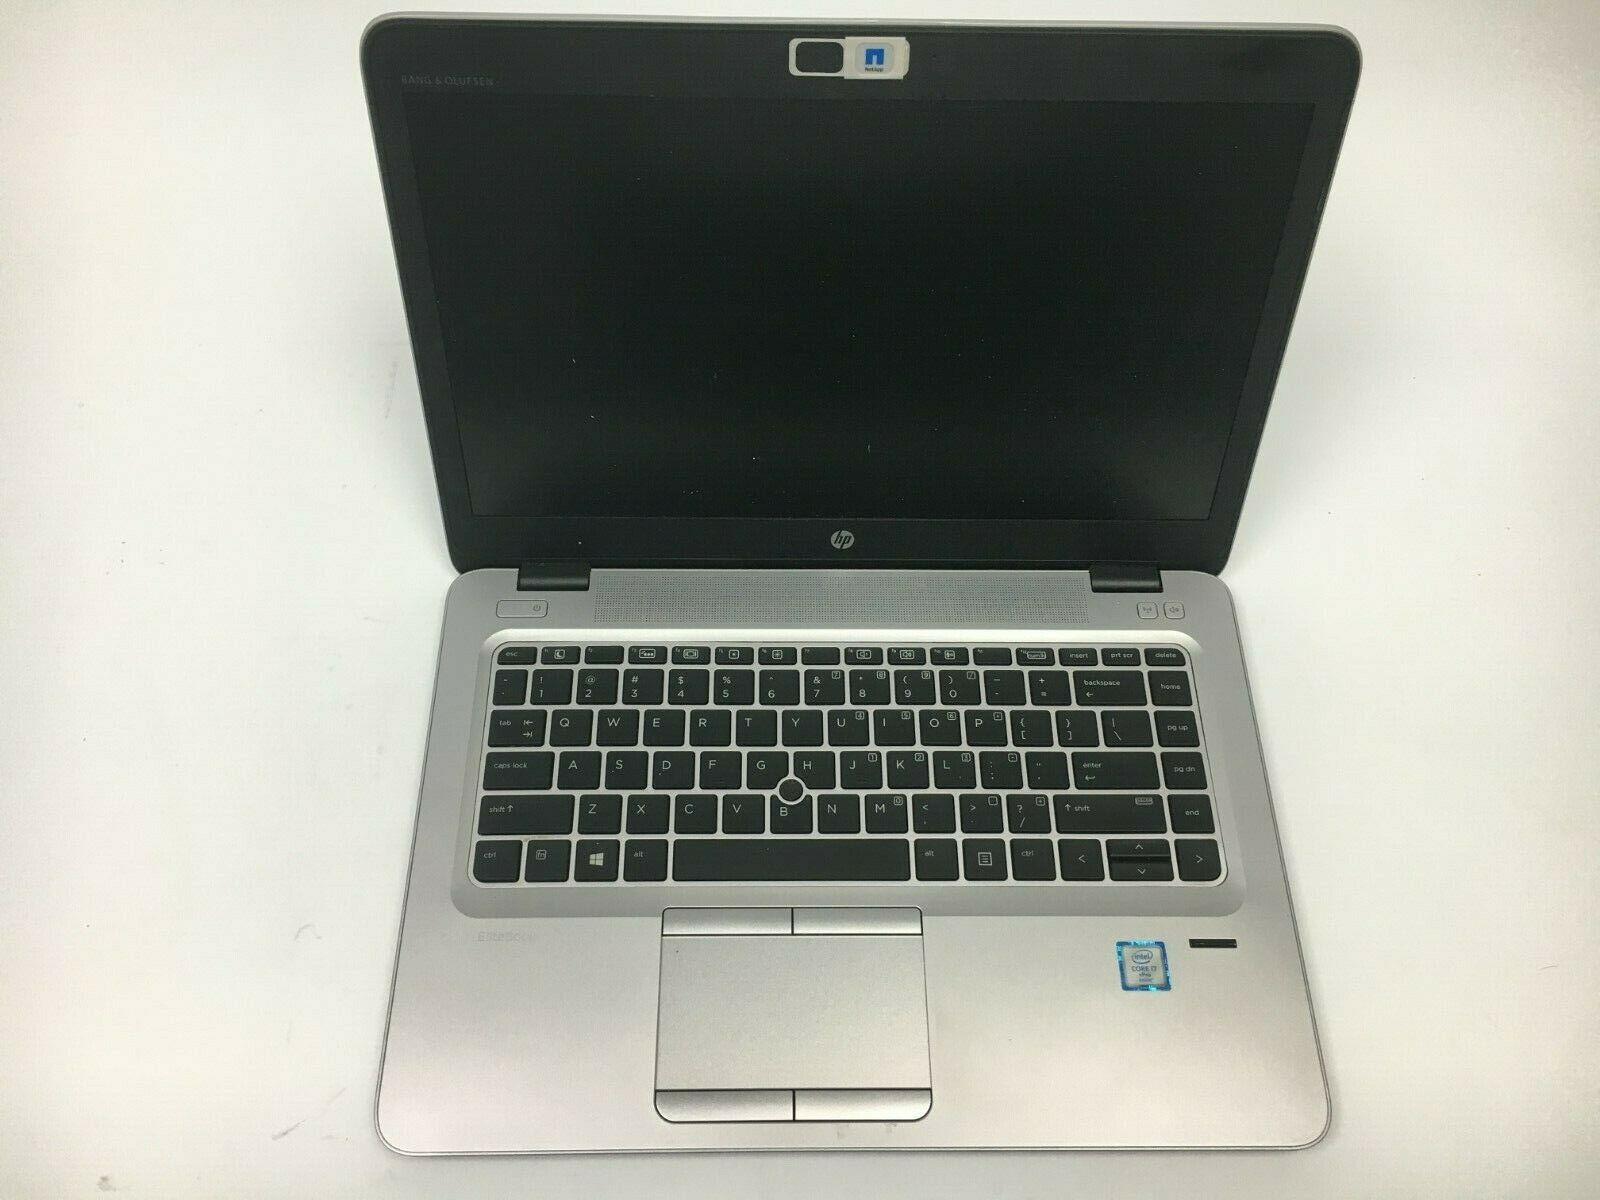 HP EliteBook 840 G3 Core i7, No RAM, No HDD, No OS FOR PARTS OR REPAIRS. Buy it now for 199.99